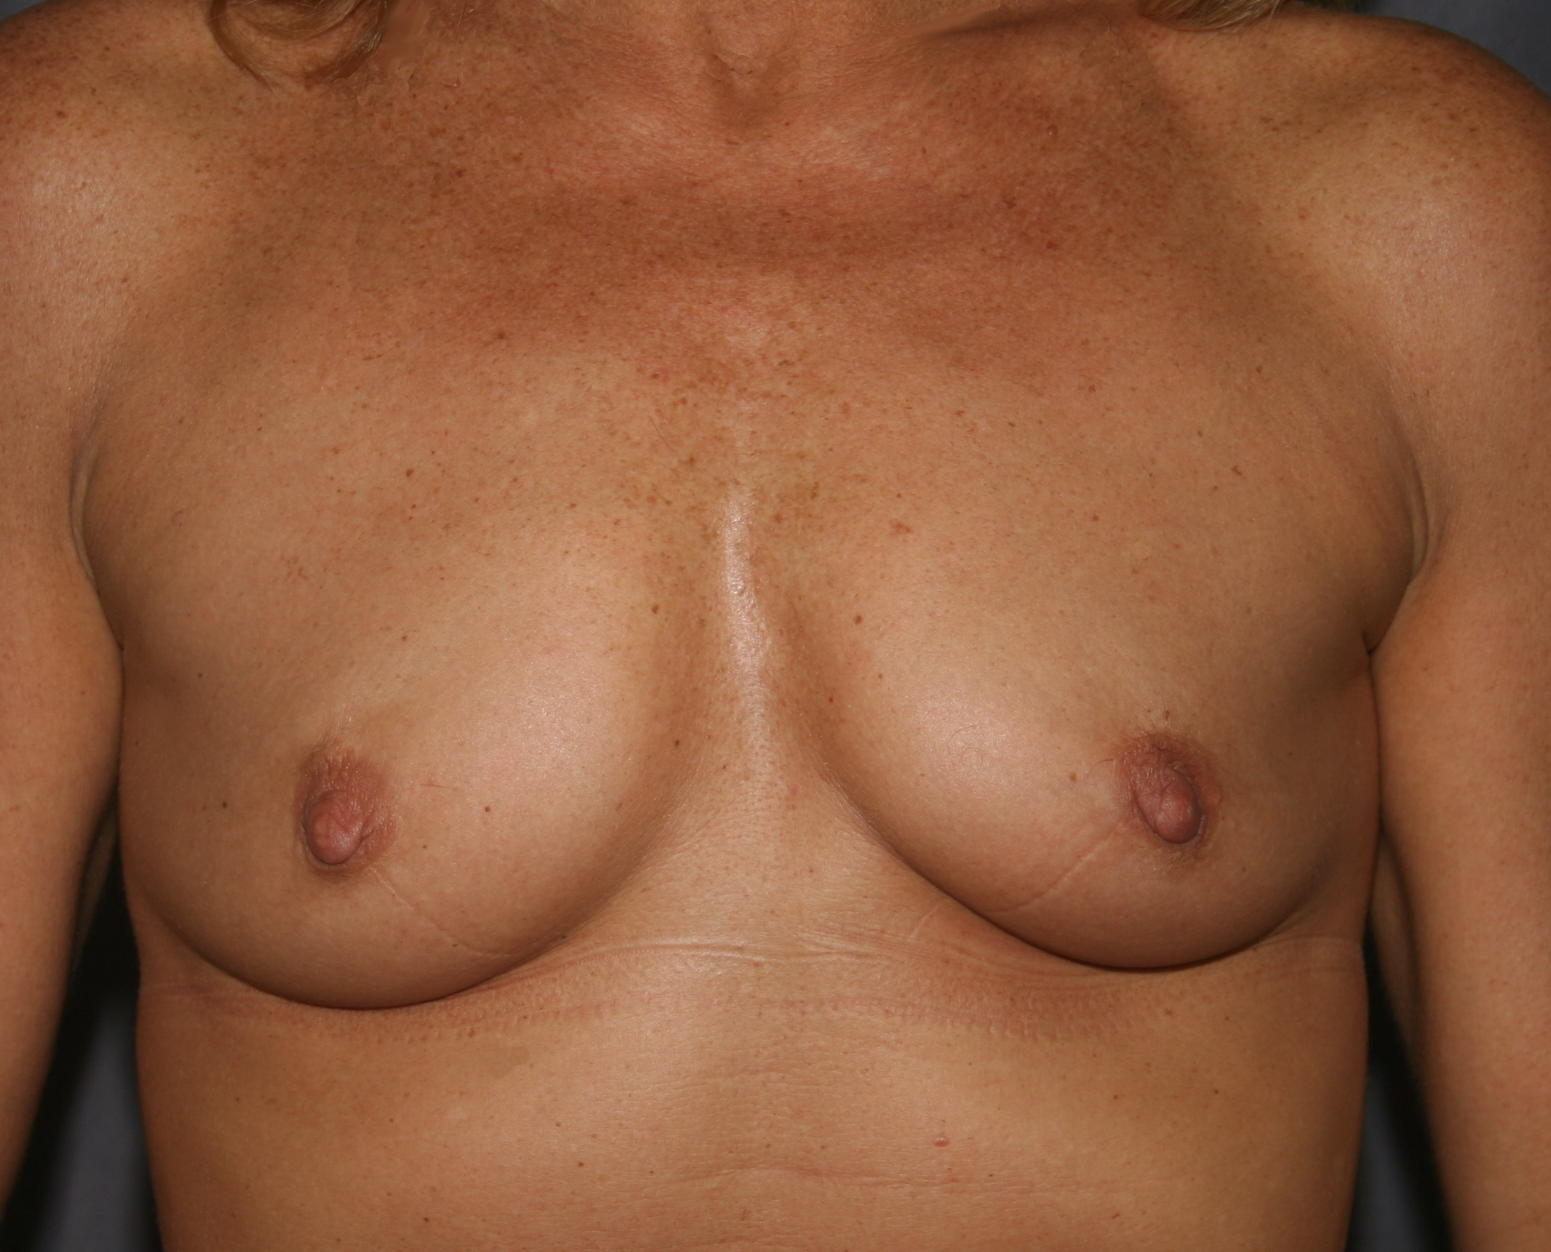 This patient desired restoration of her lost breast volume.